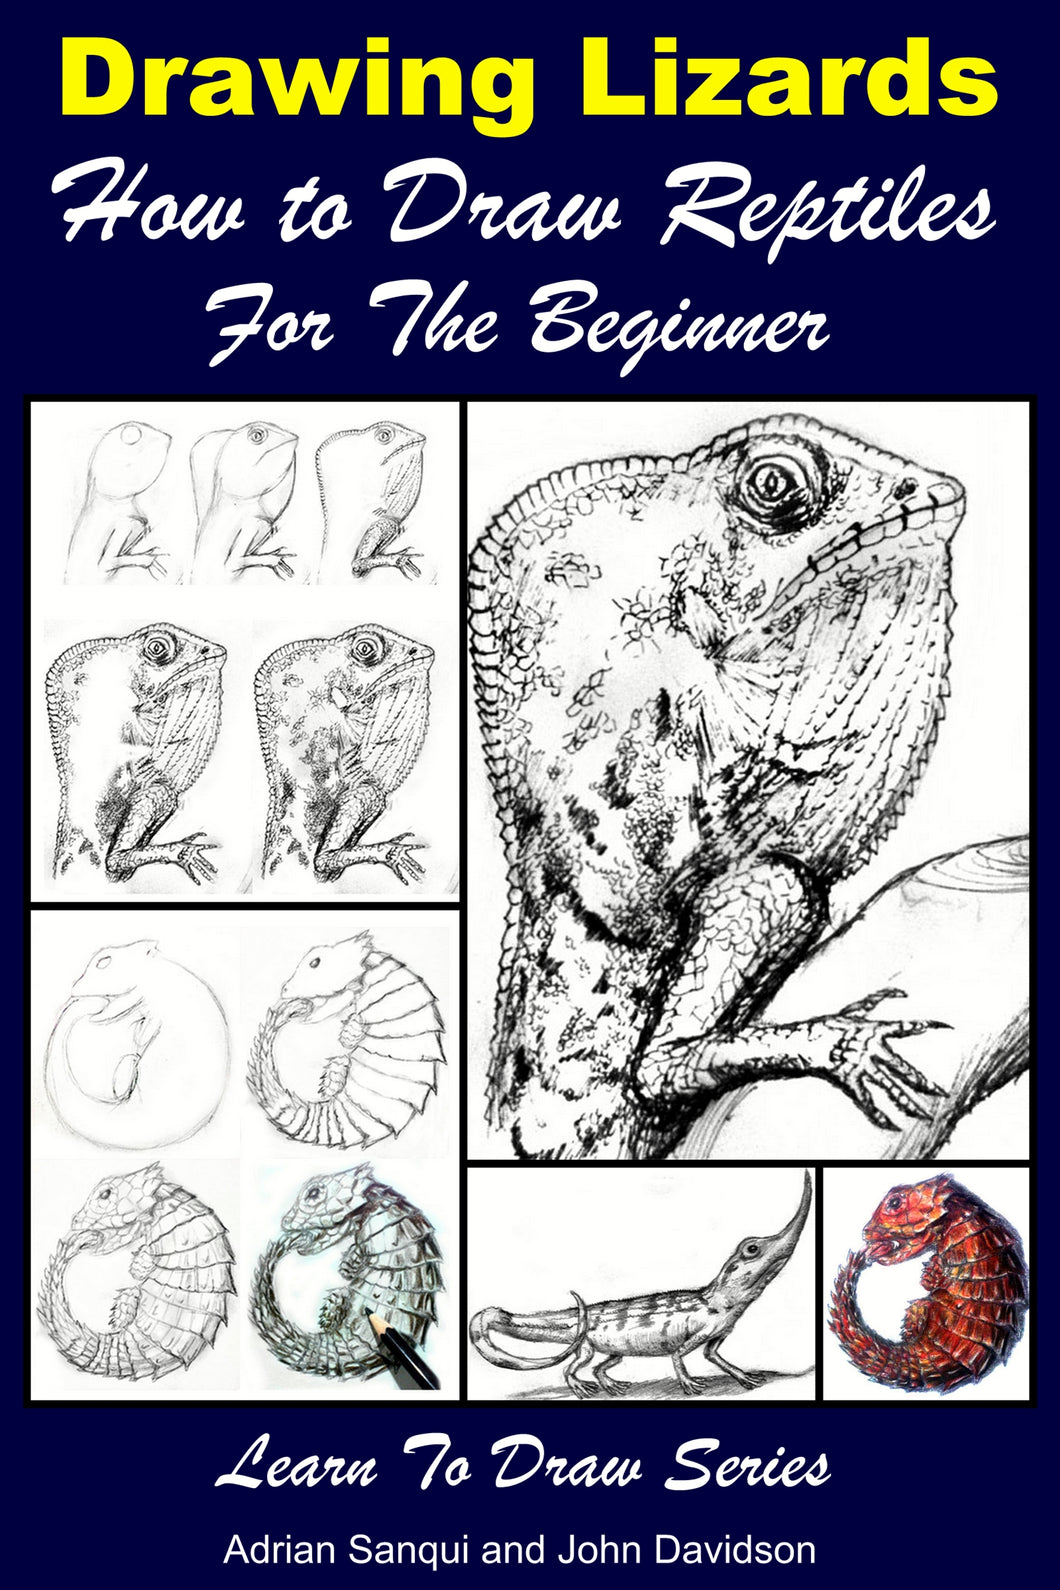 Drawing Lizards - How to Draw Reptiles For the Beginner